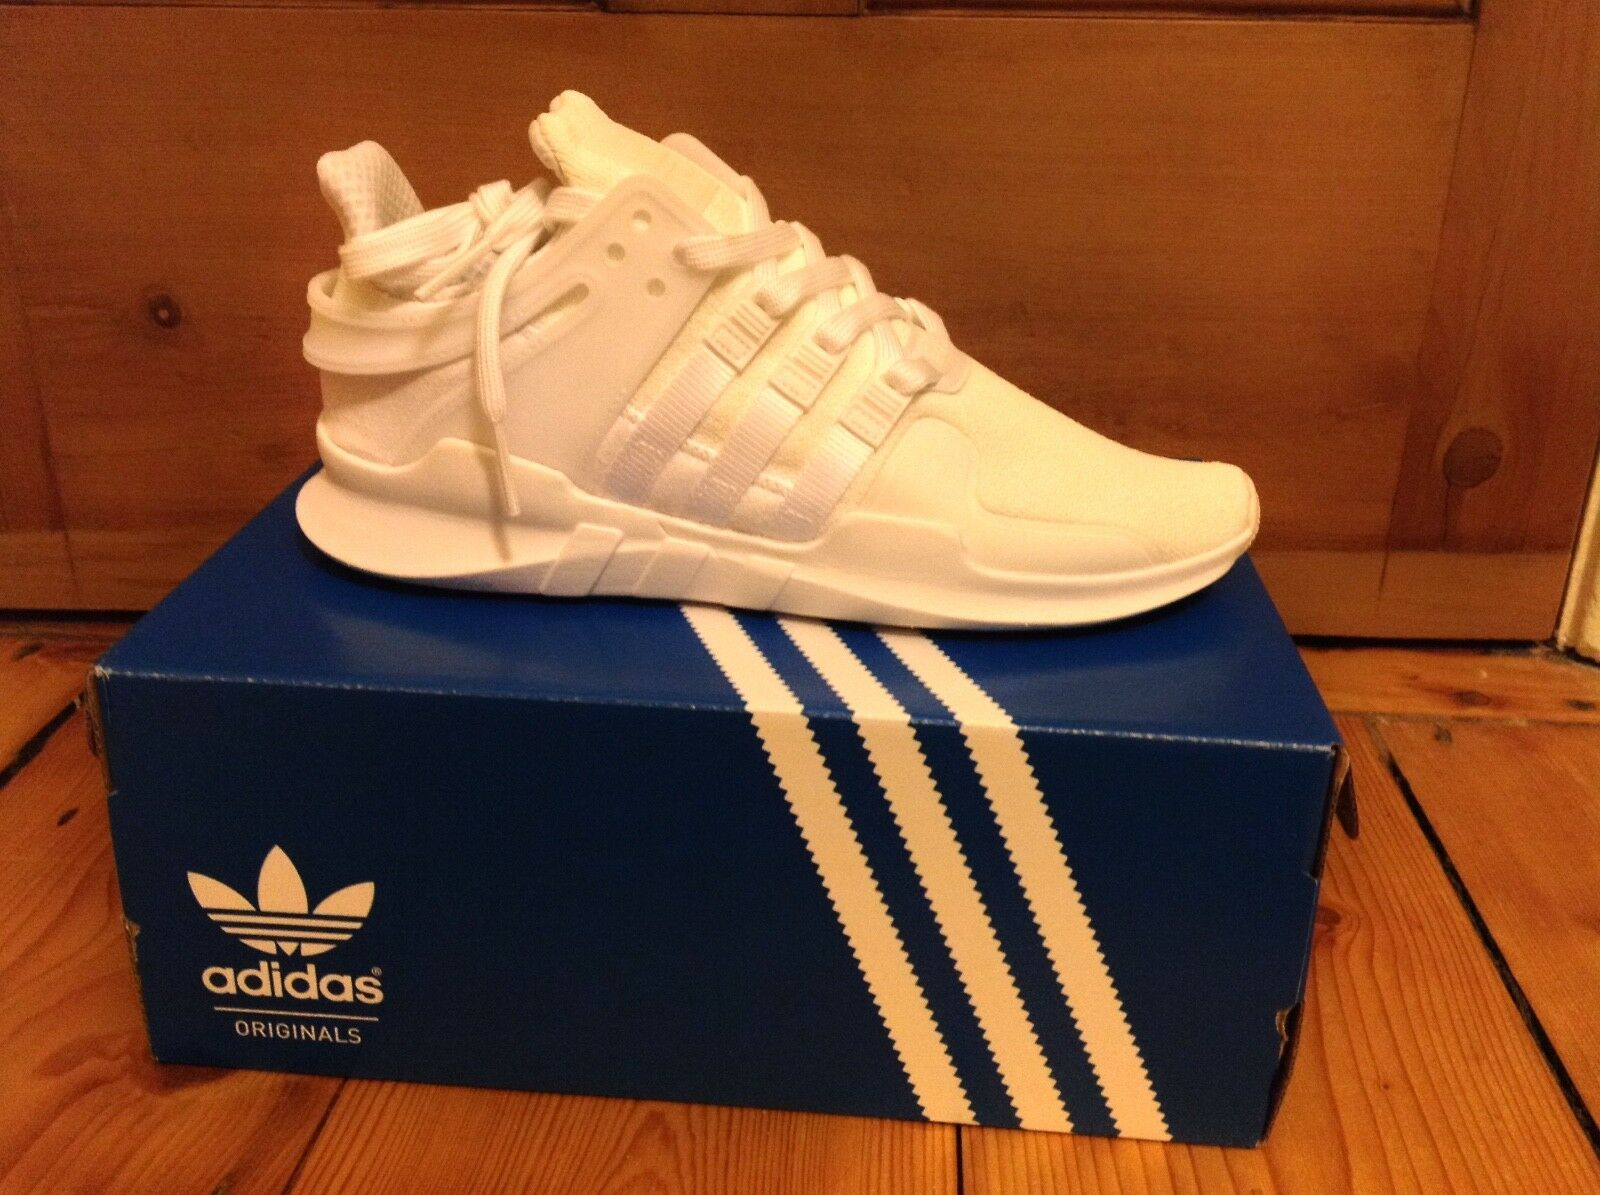 New homme adidas  EQT Support ADV - blanc Textile NMD R1 R2Primeknit